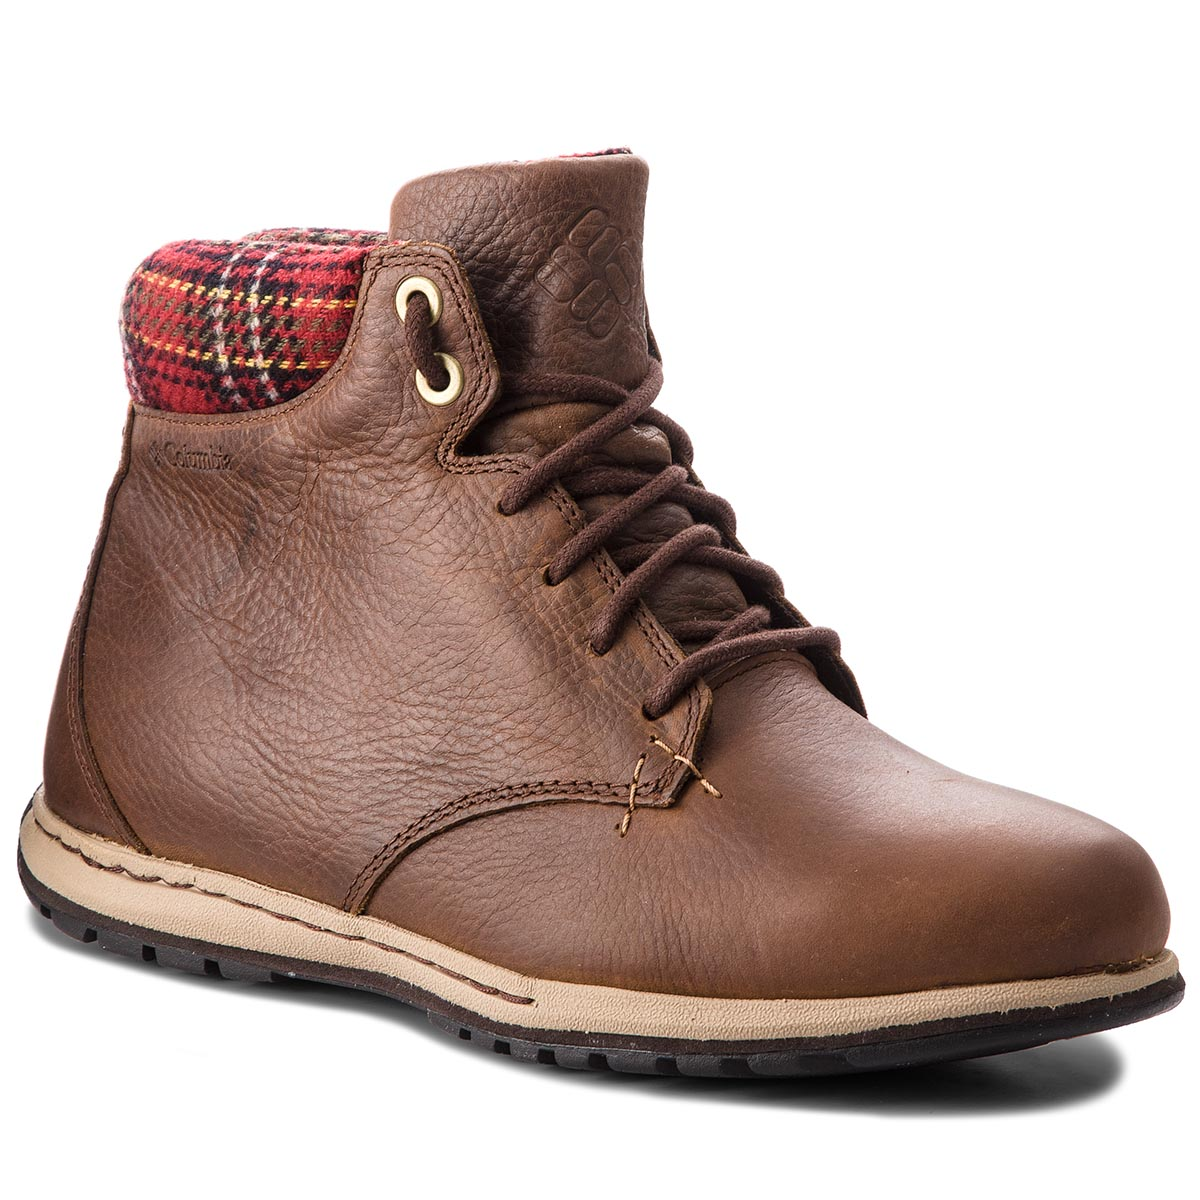 Cizme COLUMBIA - Davenport Xtm Waterproof Omni-Heat BM1693 Hawk/British Tan 248